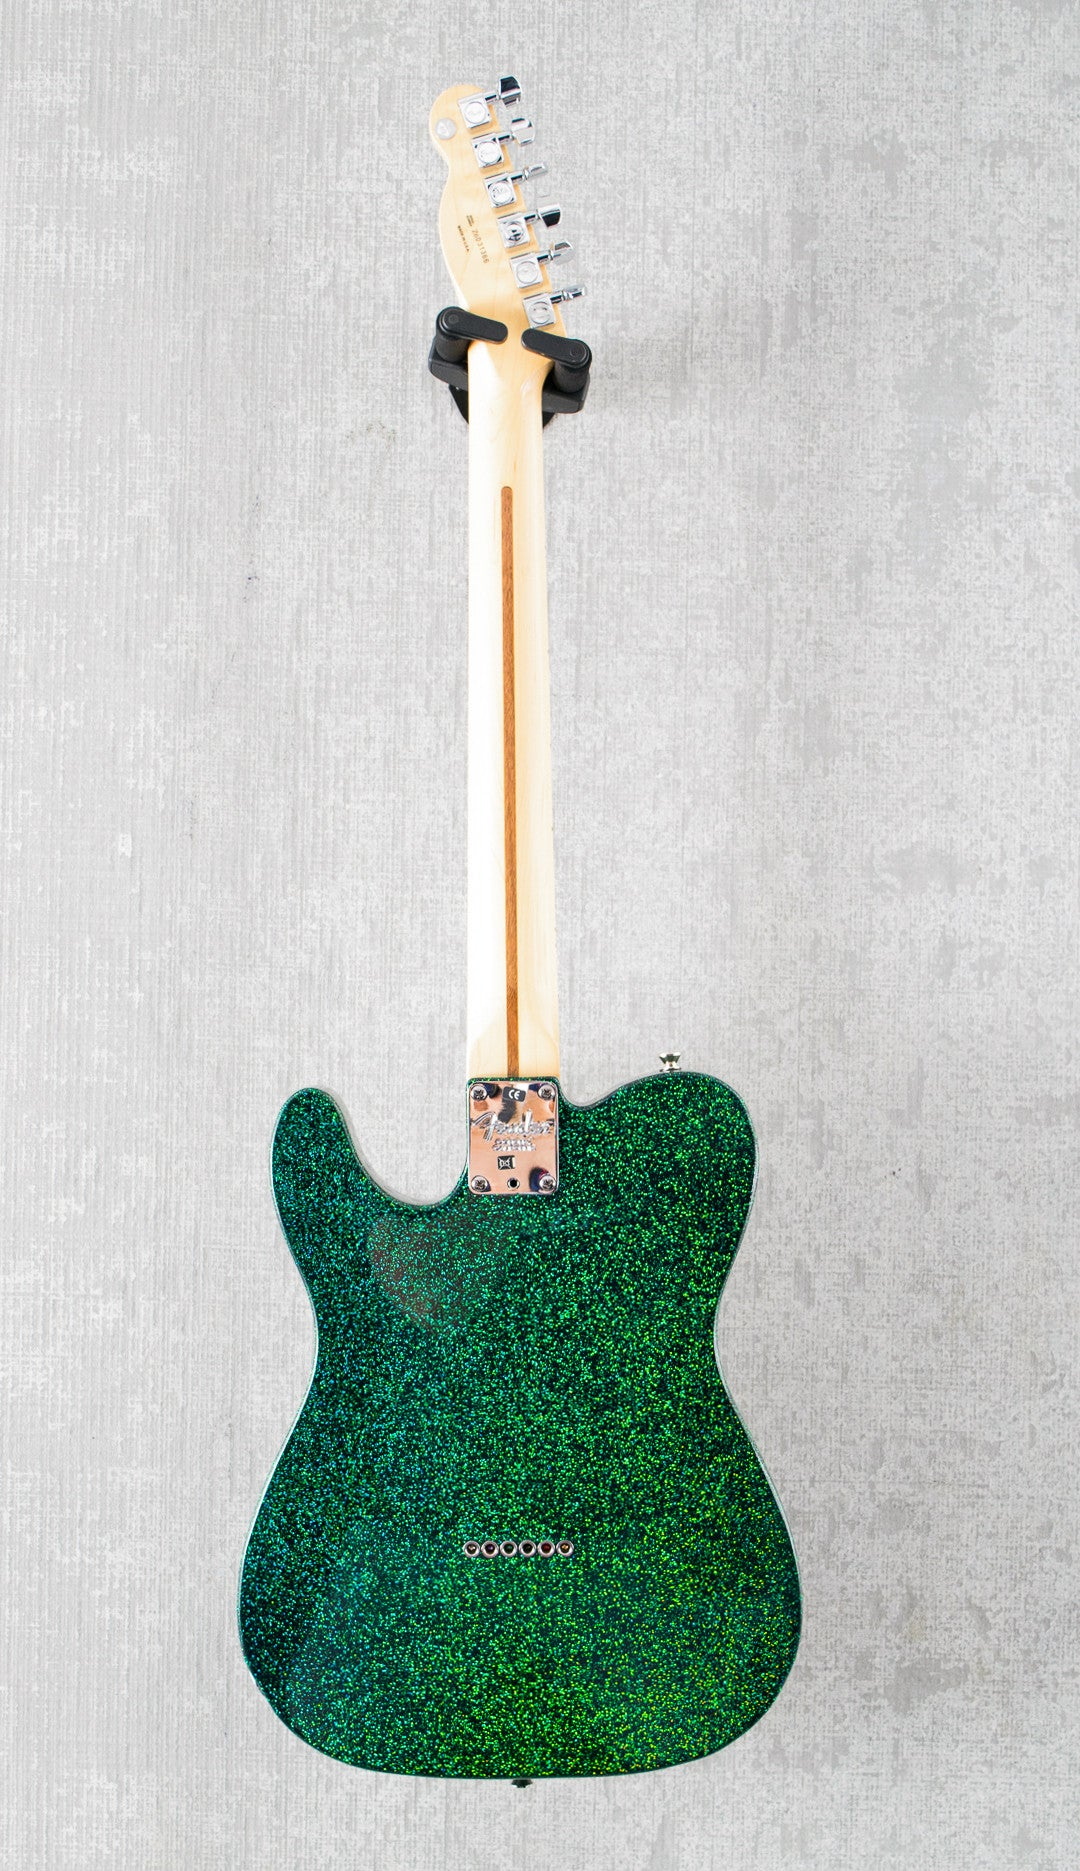 Used Fender American Ash Telecaster Green Sparkle Custom Finish